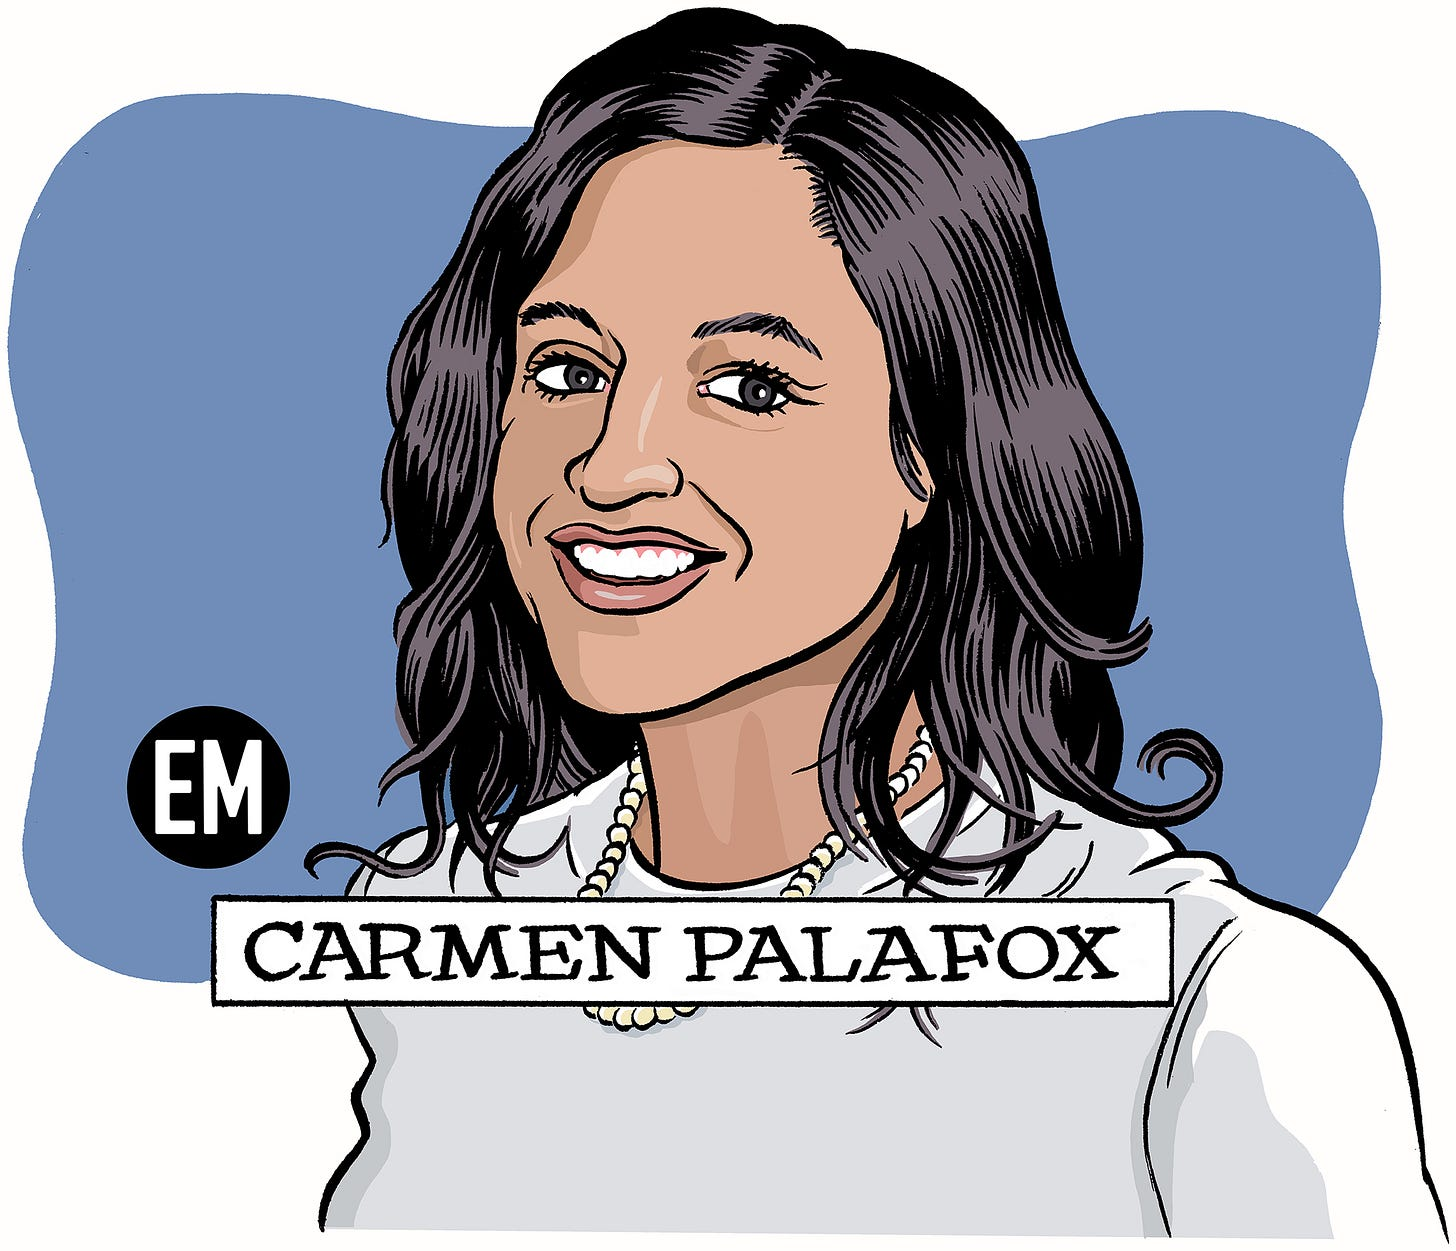 Carmen Palafox by David Coulson for the Emerging Manager, 2021